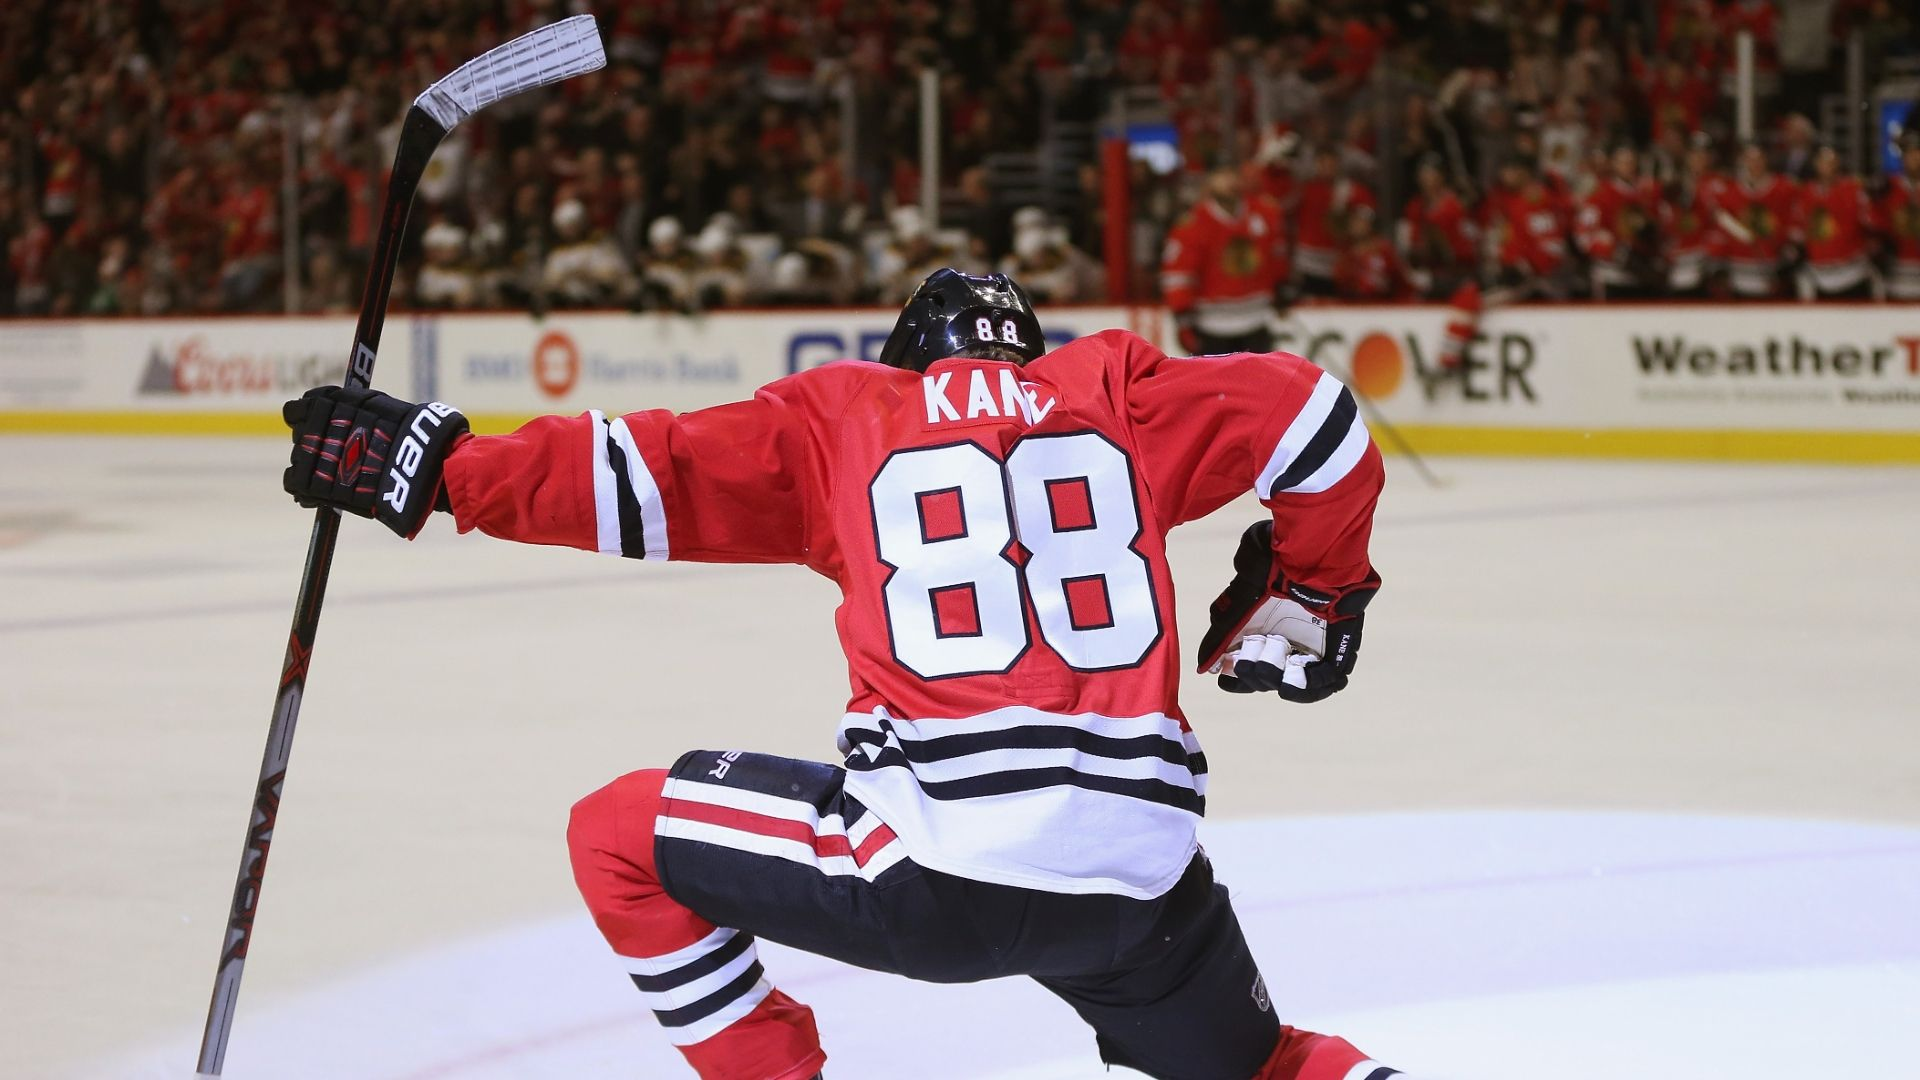 https://secure.espncdn.com/combiner/i?img=/media/motion/2016/0411/dm_160411_nhl_kane_first_american_lead_nhl_scoring/dm_160411_nhl_kane_first_american_lead_nhl_scoring.jpg